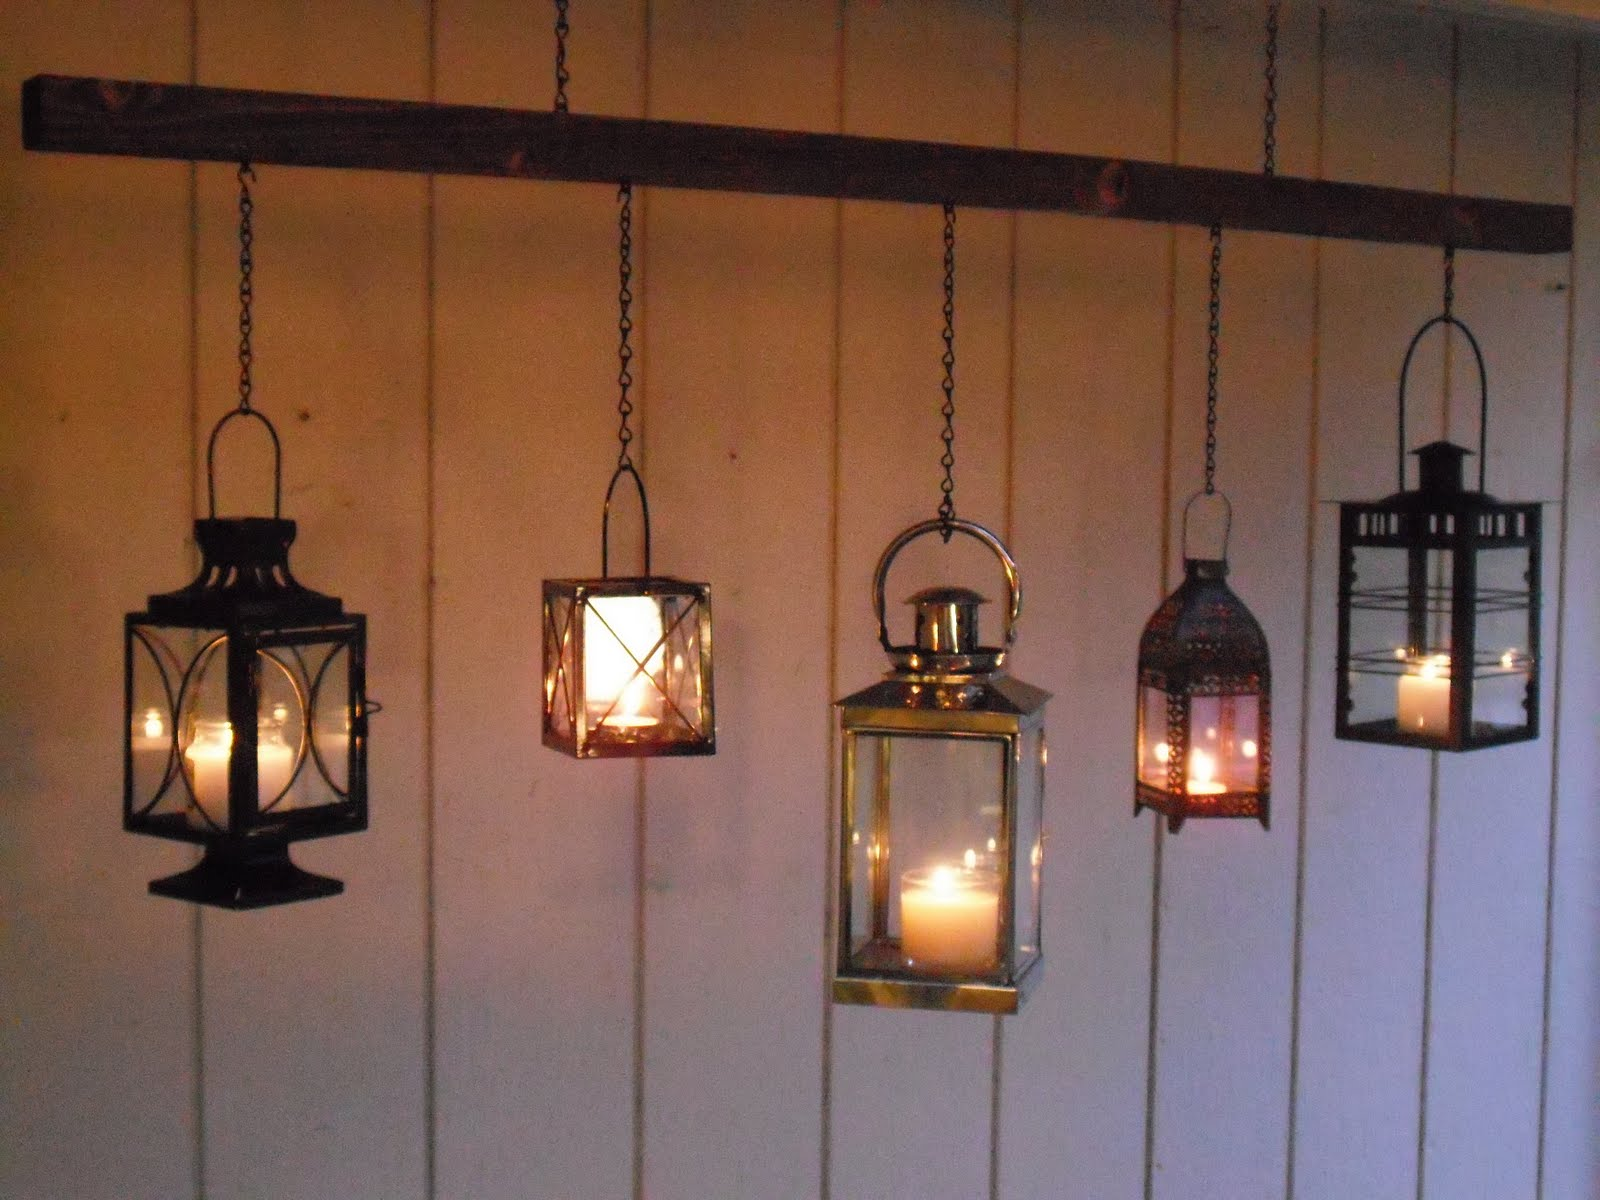 home depot ladder cost with Candle Lanterns on Candle Lanterns also Carports Portable Metal Portable Metal Carports also 4 Hidden Costs Of Buying A Home additionally Hammock pany also How To Set Trusses On Pole Barn.